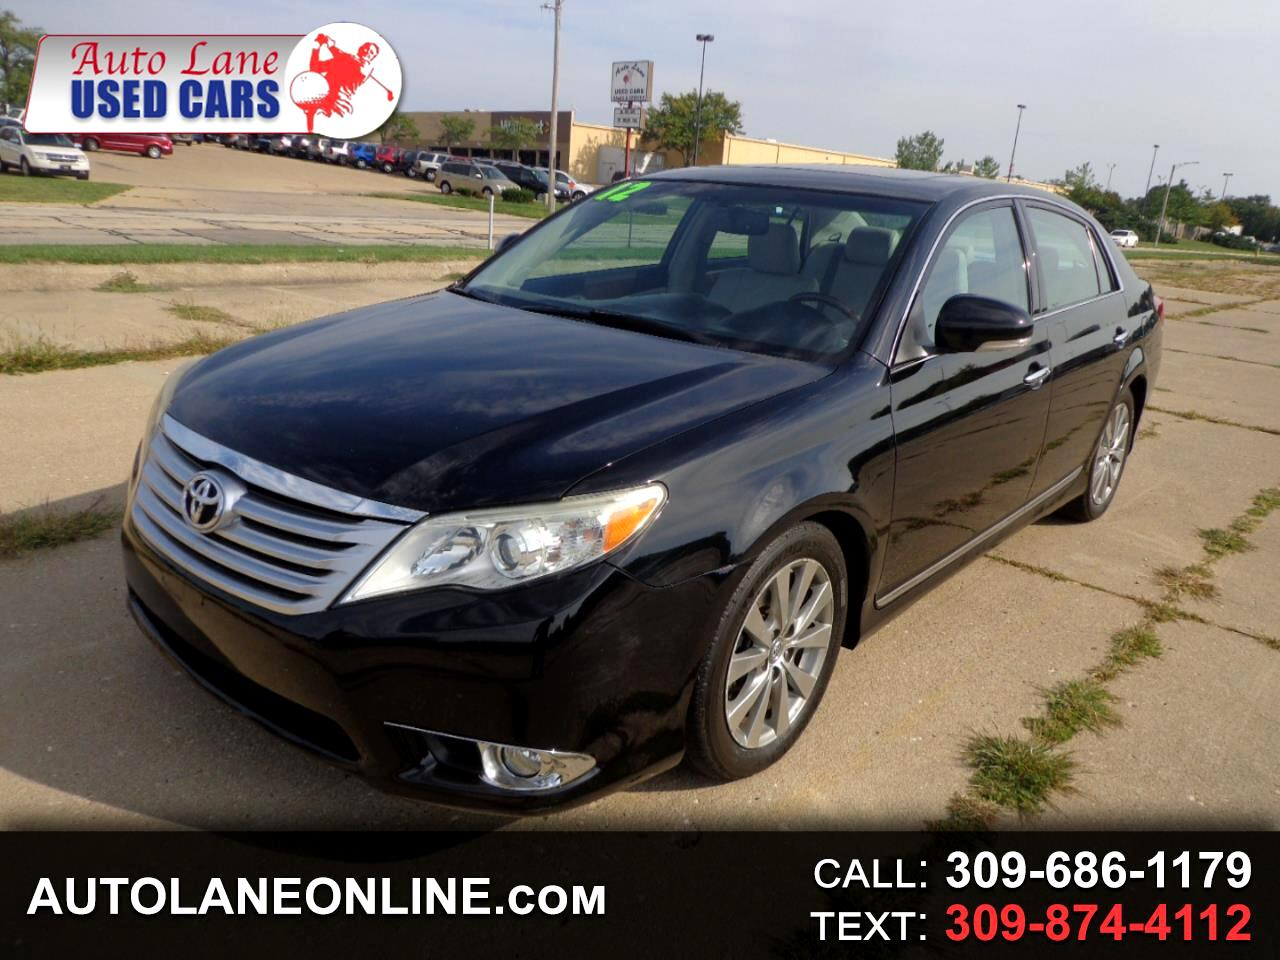 Toyota Avalon 4dr Sdn (Natl) 2012